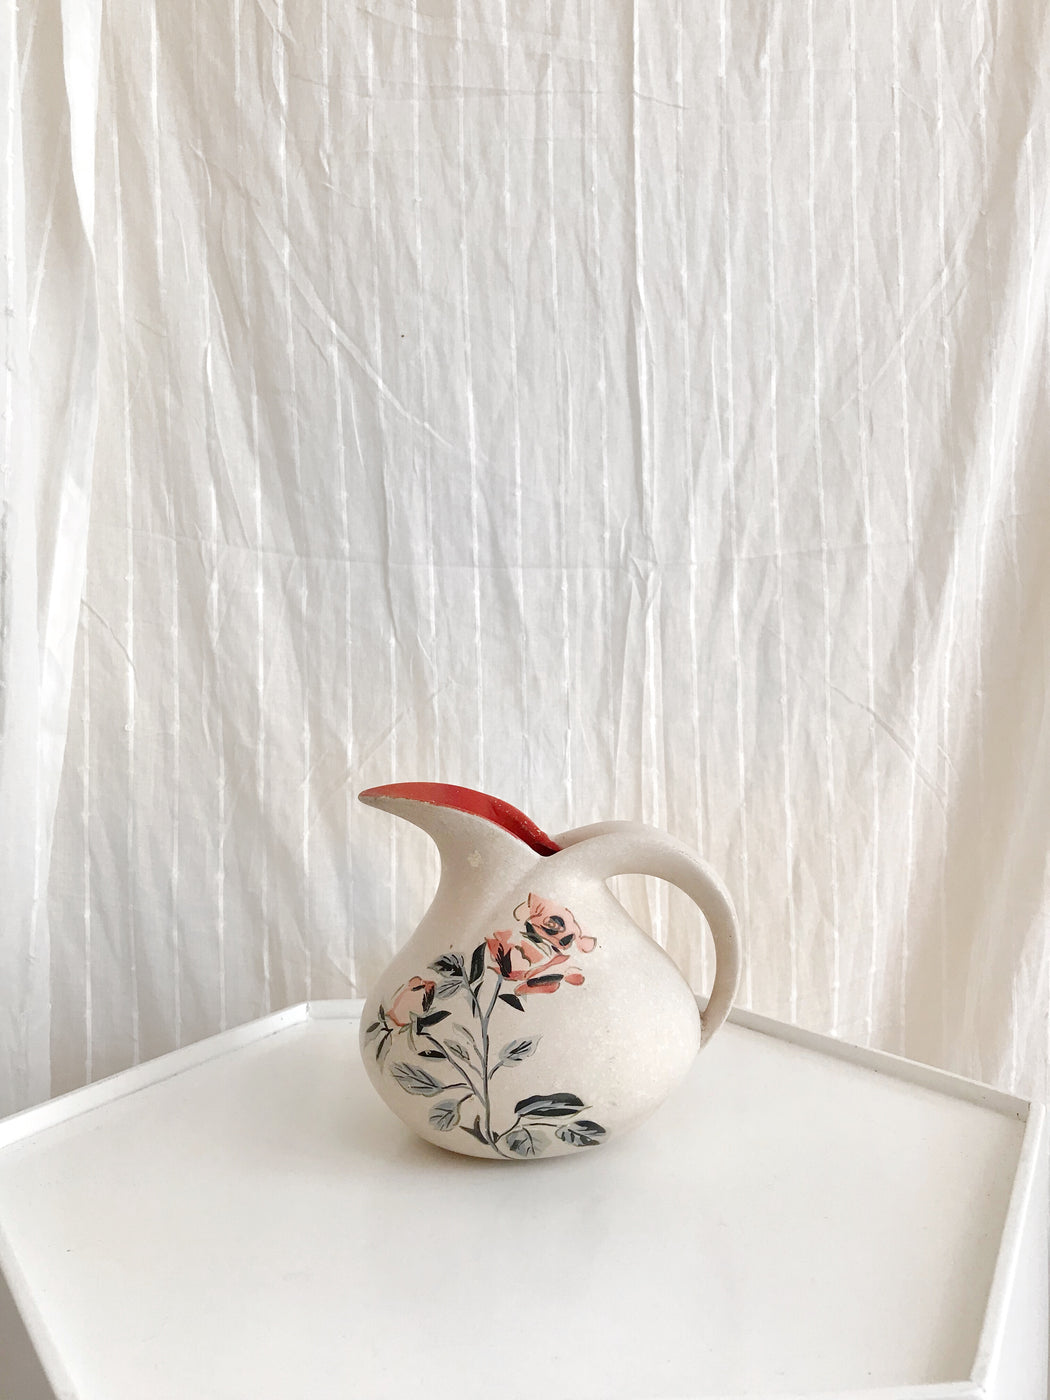 Pottery Vase with Roses